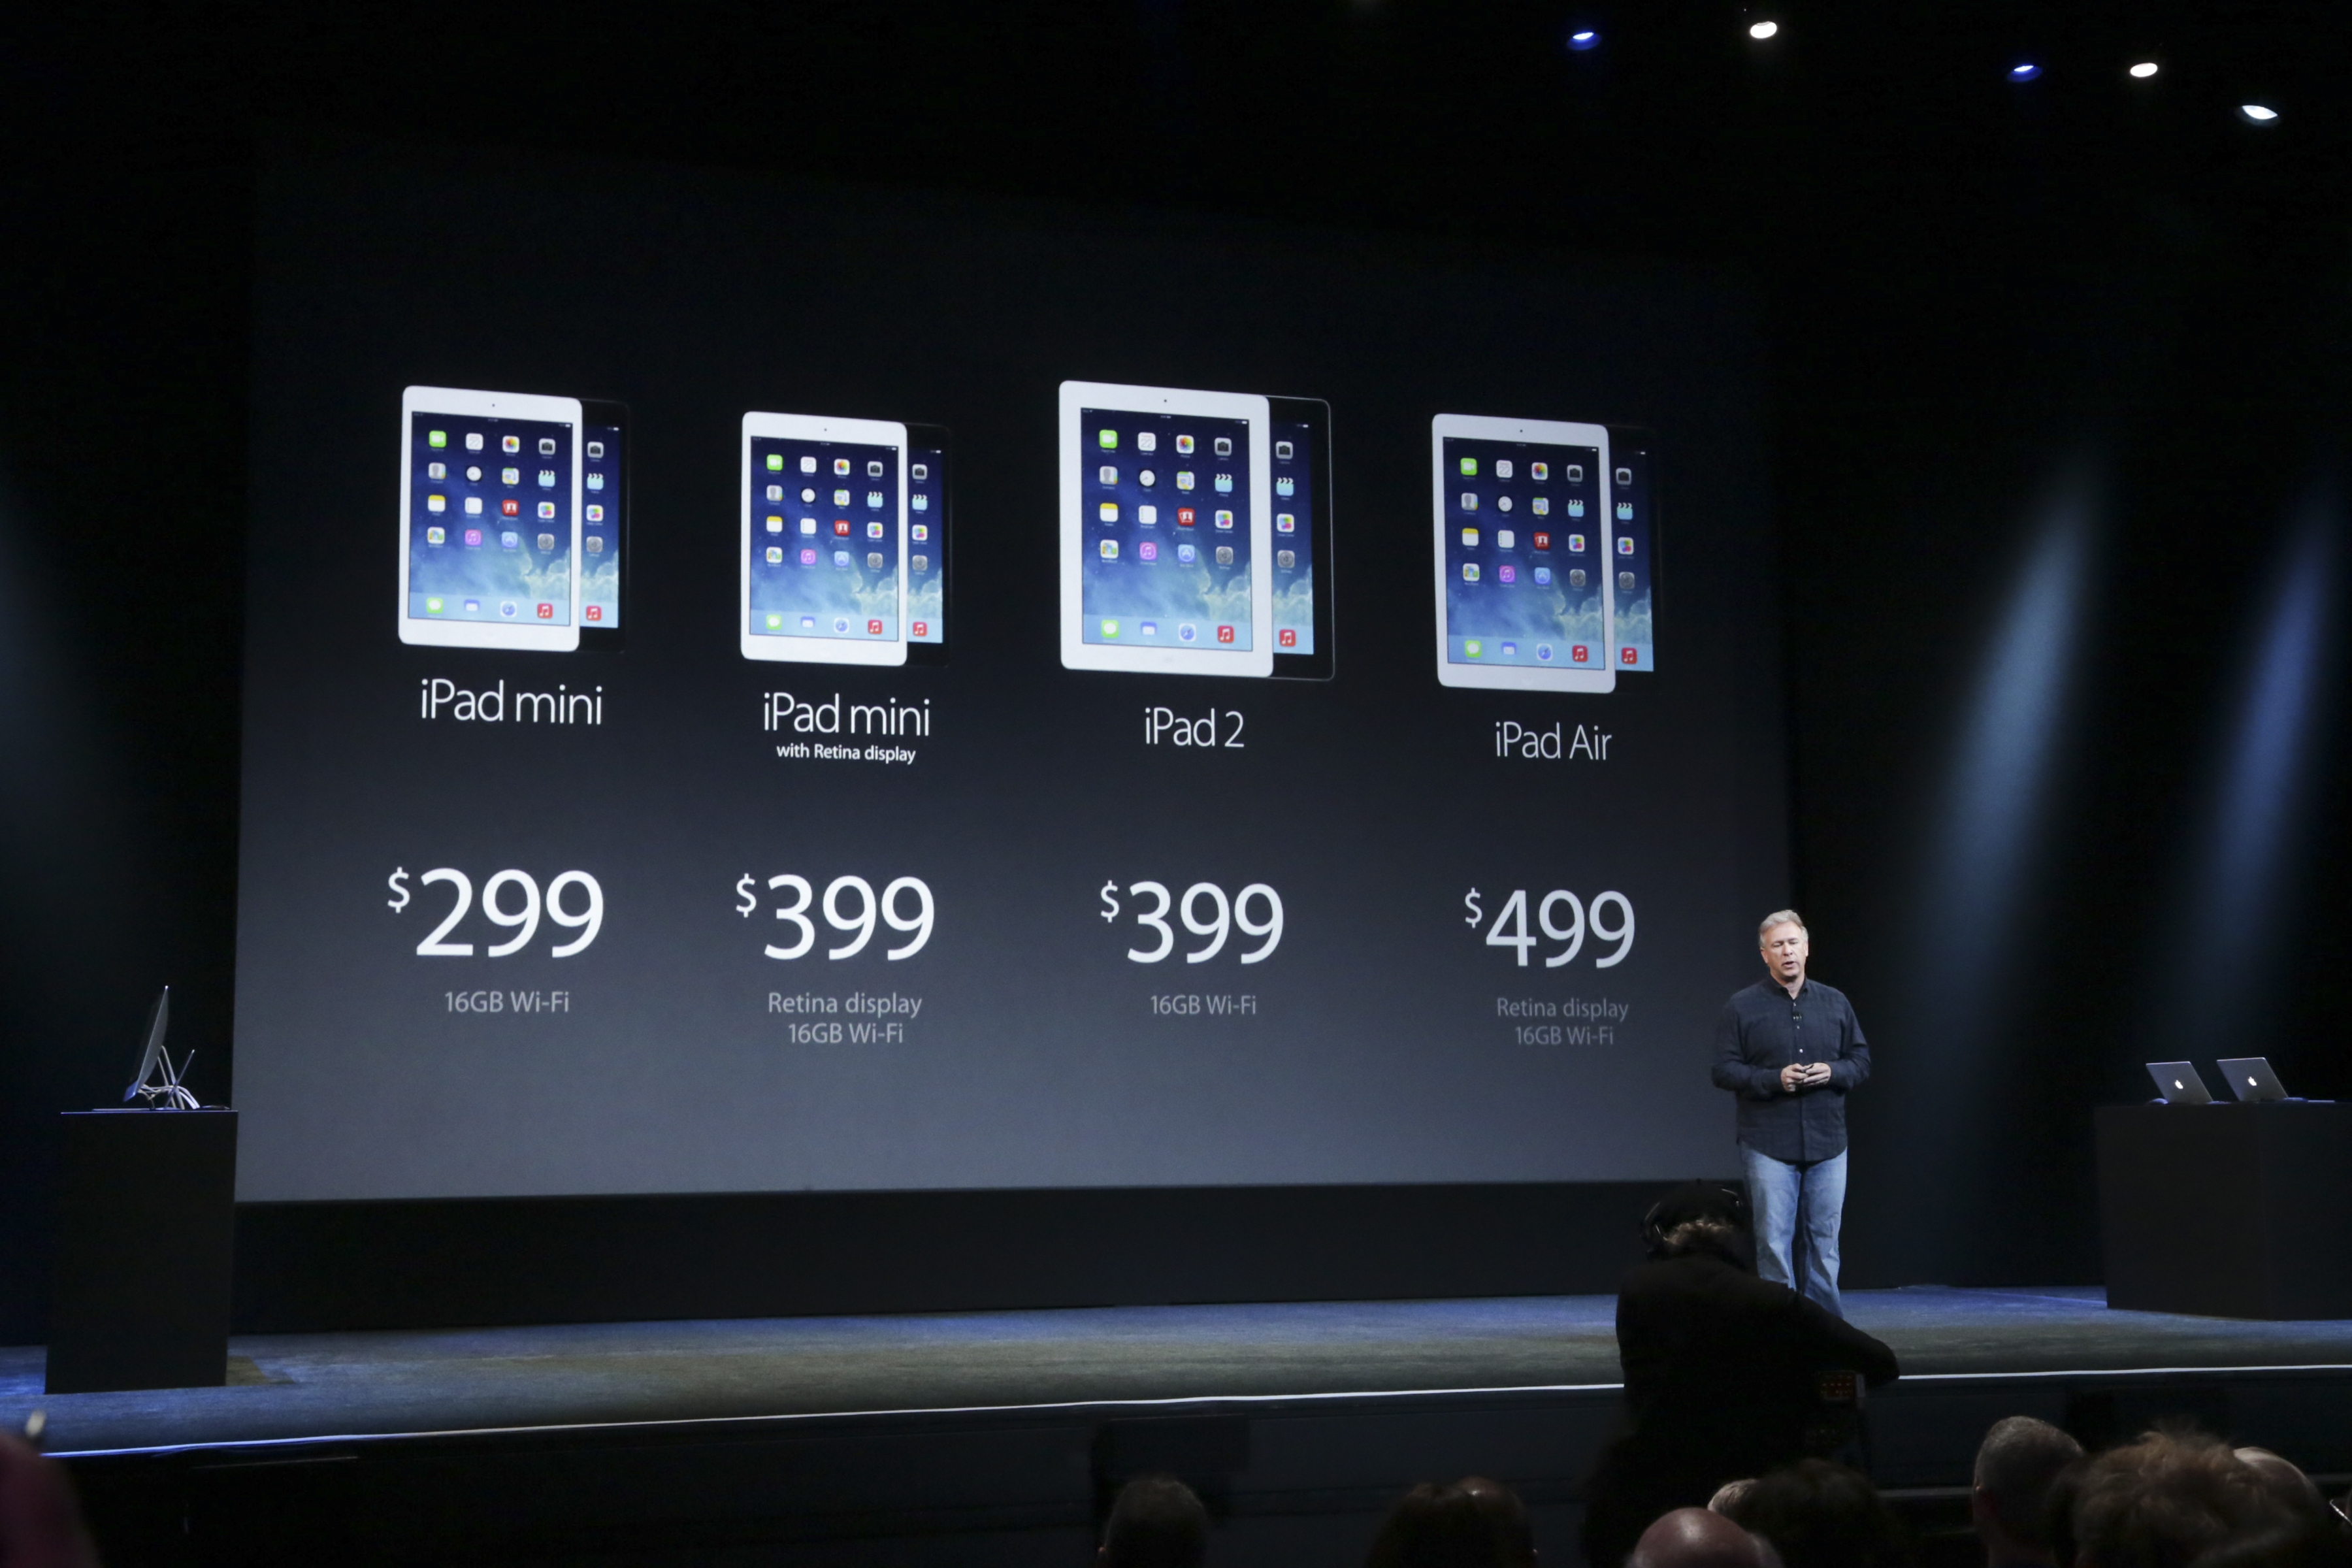 Philip Schiller, AppleþÄôs head of marketing, talks about the price of the new iPads at an Apple product announcement at the Yerba Buena Center for the Arts Theater in San Francisco, Oct. 22, 2013. Apple announced significantly upgraded versions of its tablets at the event on Tuesday, with the iPad Mini having a higher-resolution display, while the new iPad Air, with a slimmer design, weighing about a pound. (Jim Wilson/The New York Times)